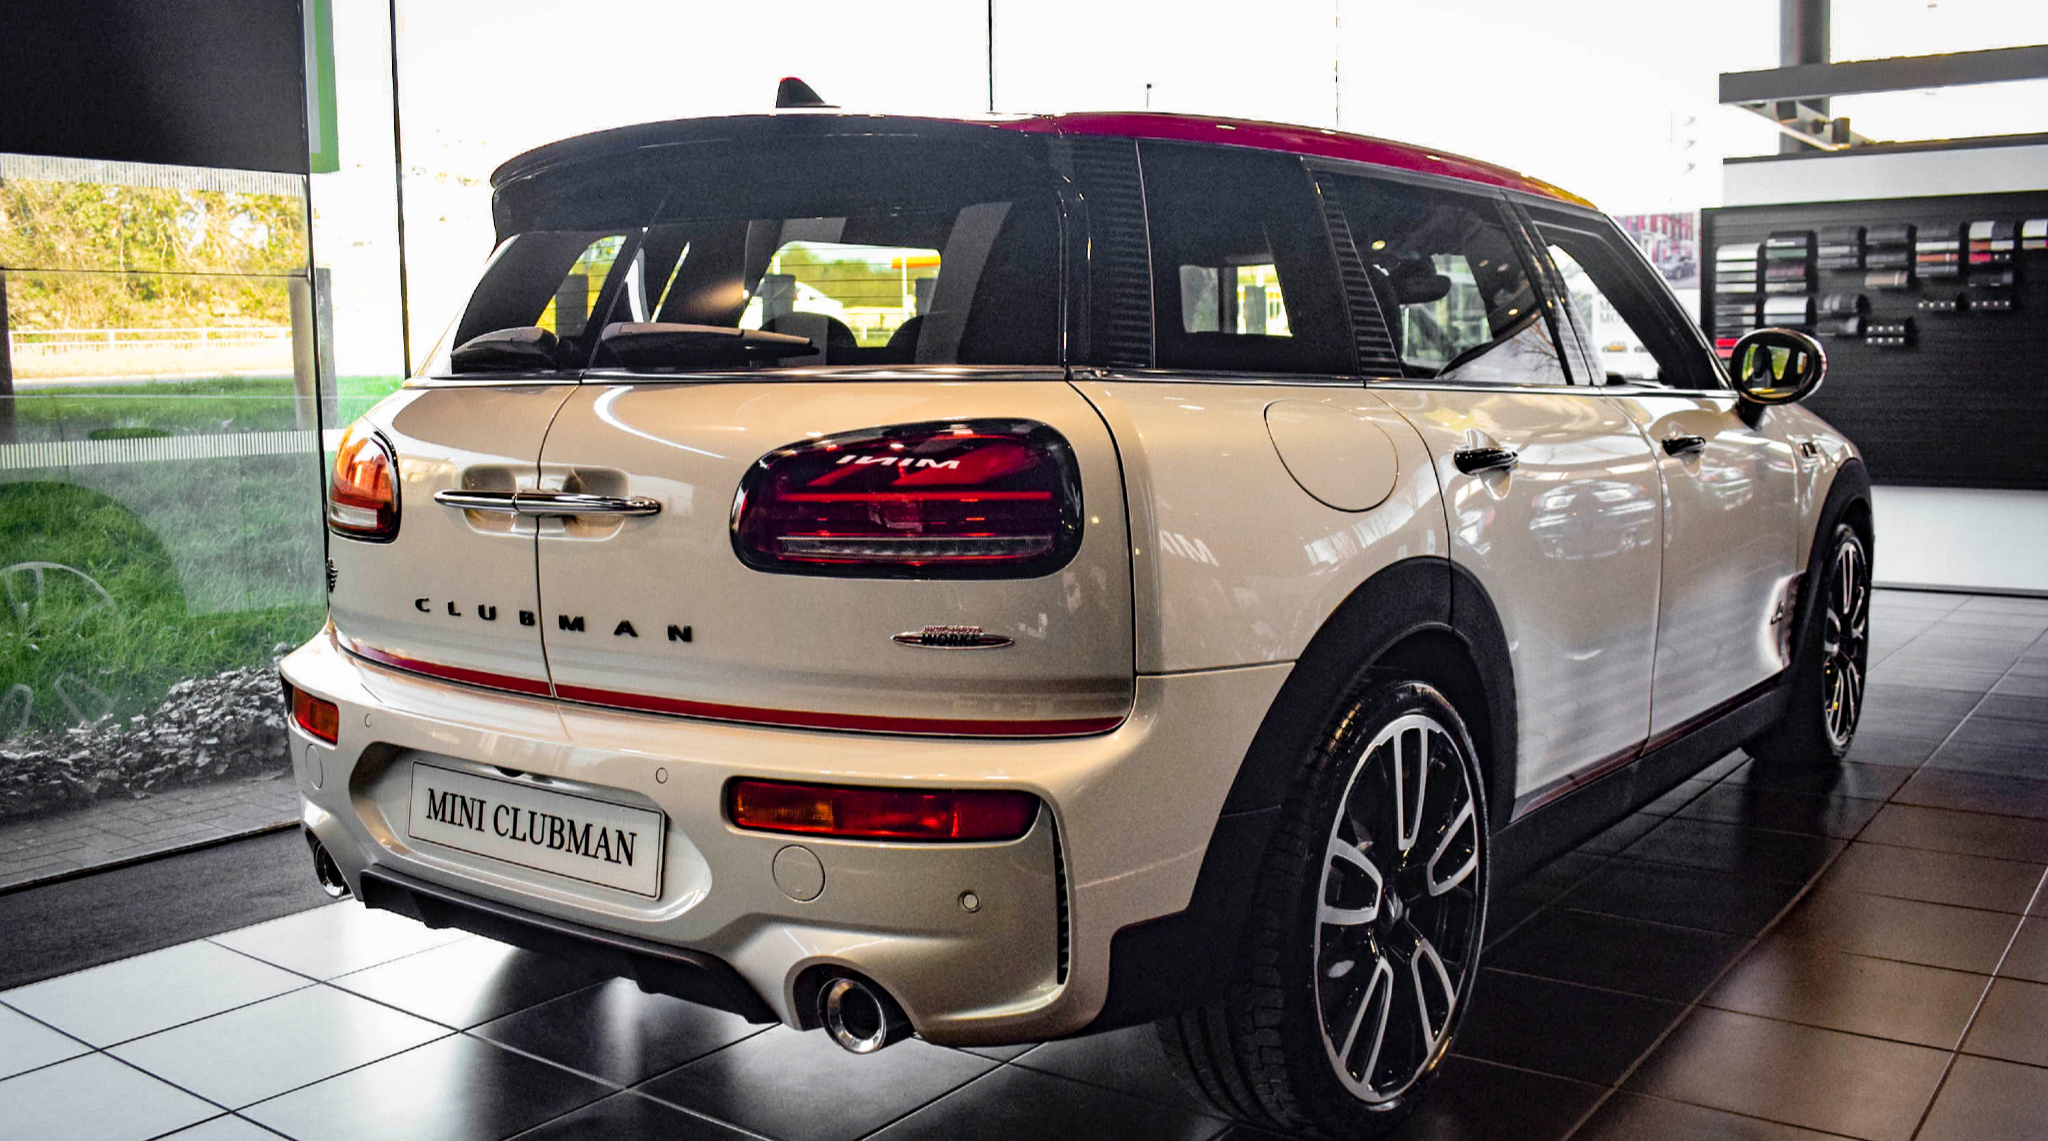 JCW Clubman White Silver Edition Rear